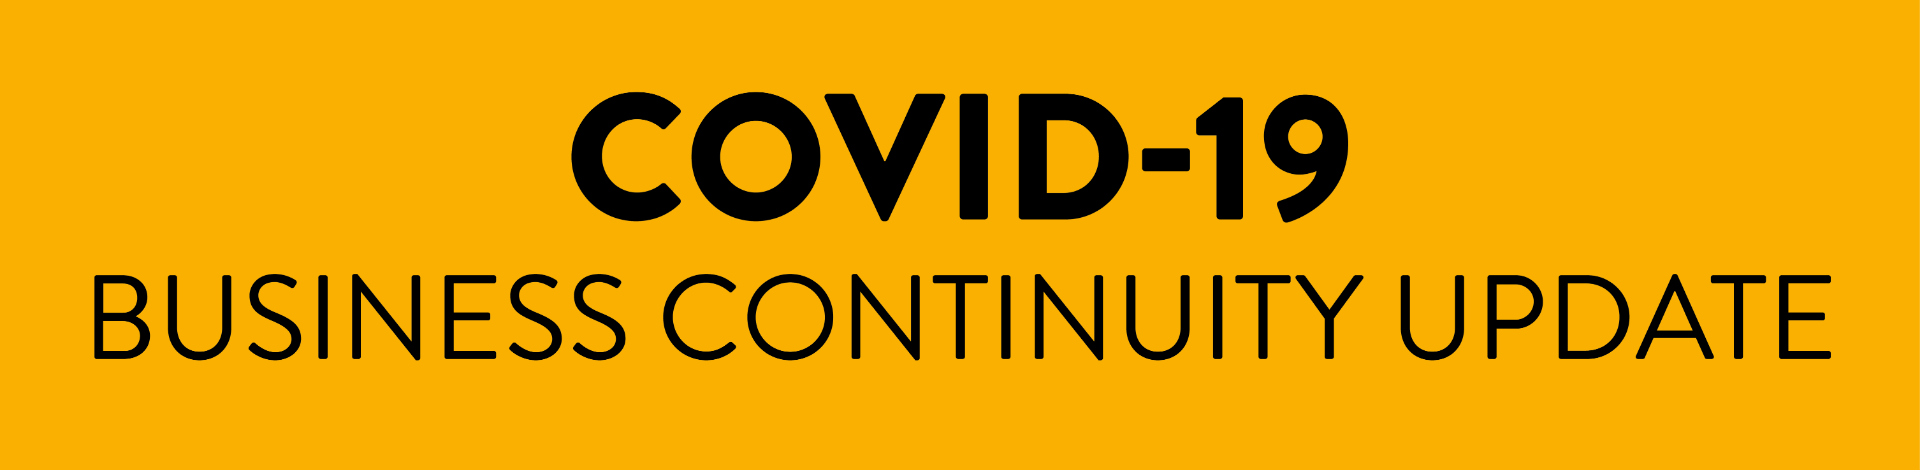 Covid19_banner.png